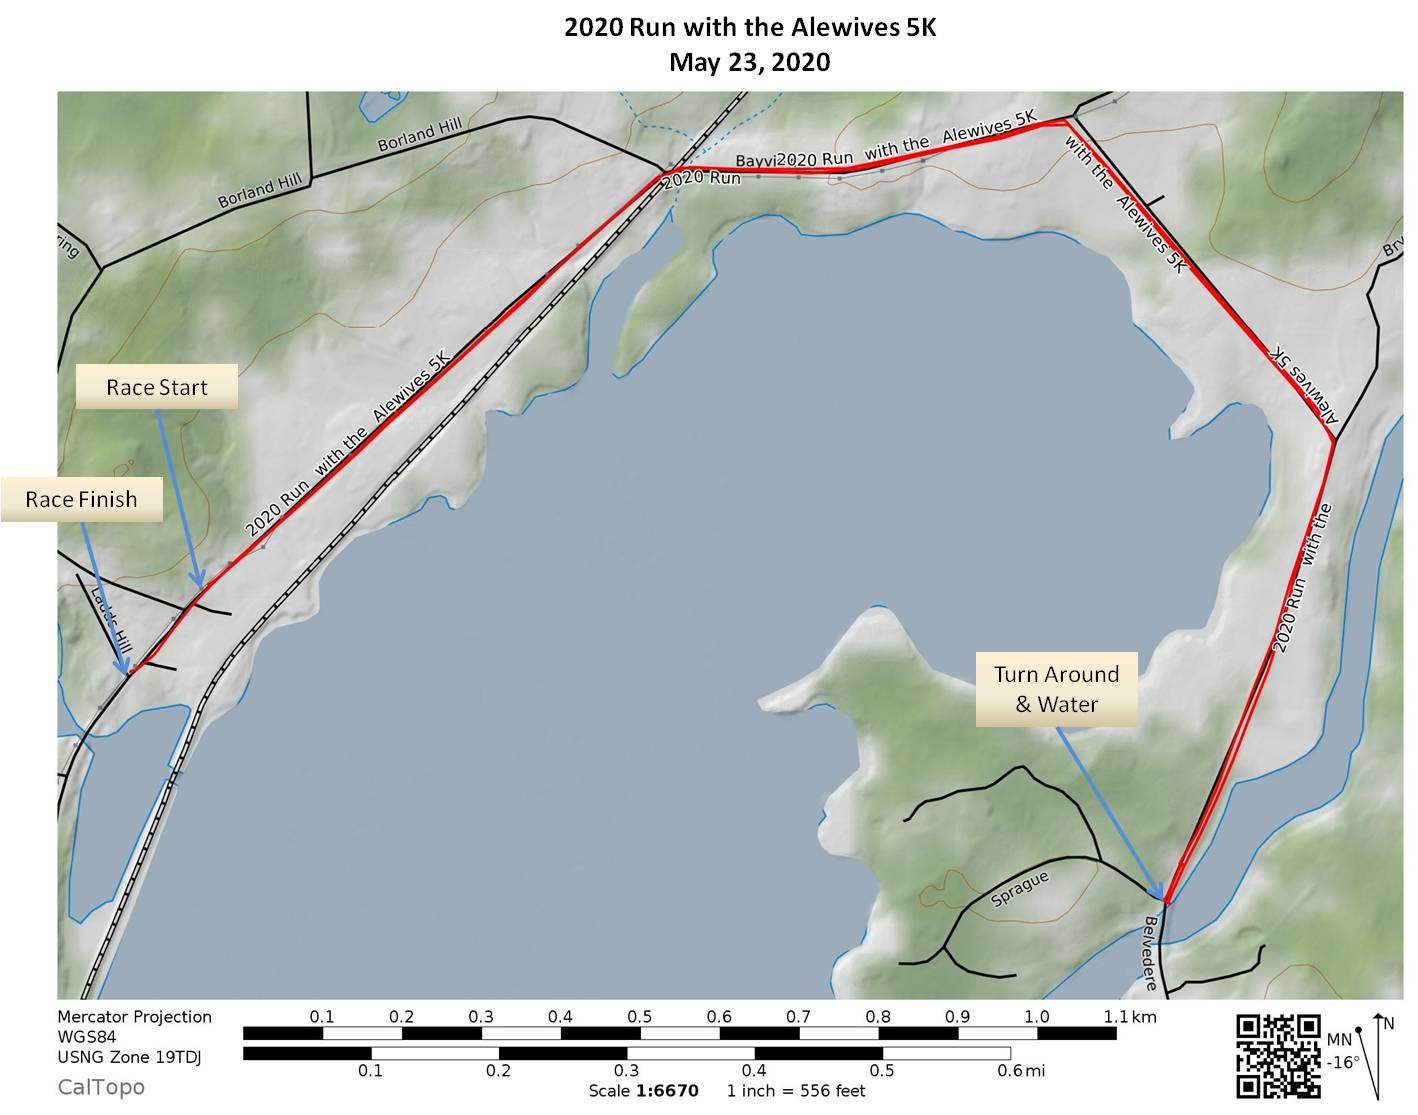 Alewives 5K 2020 Course Route